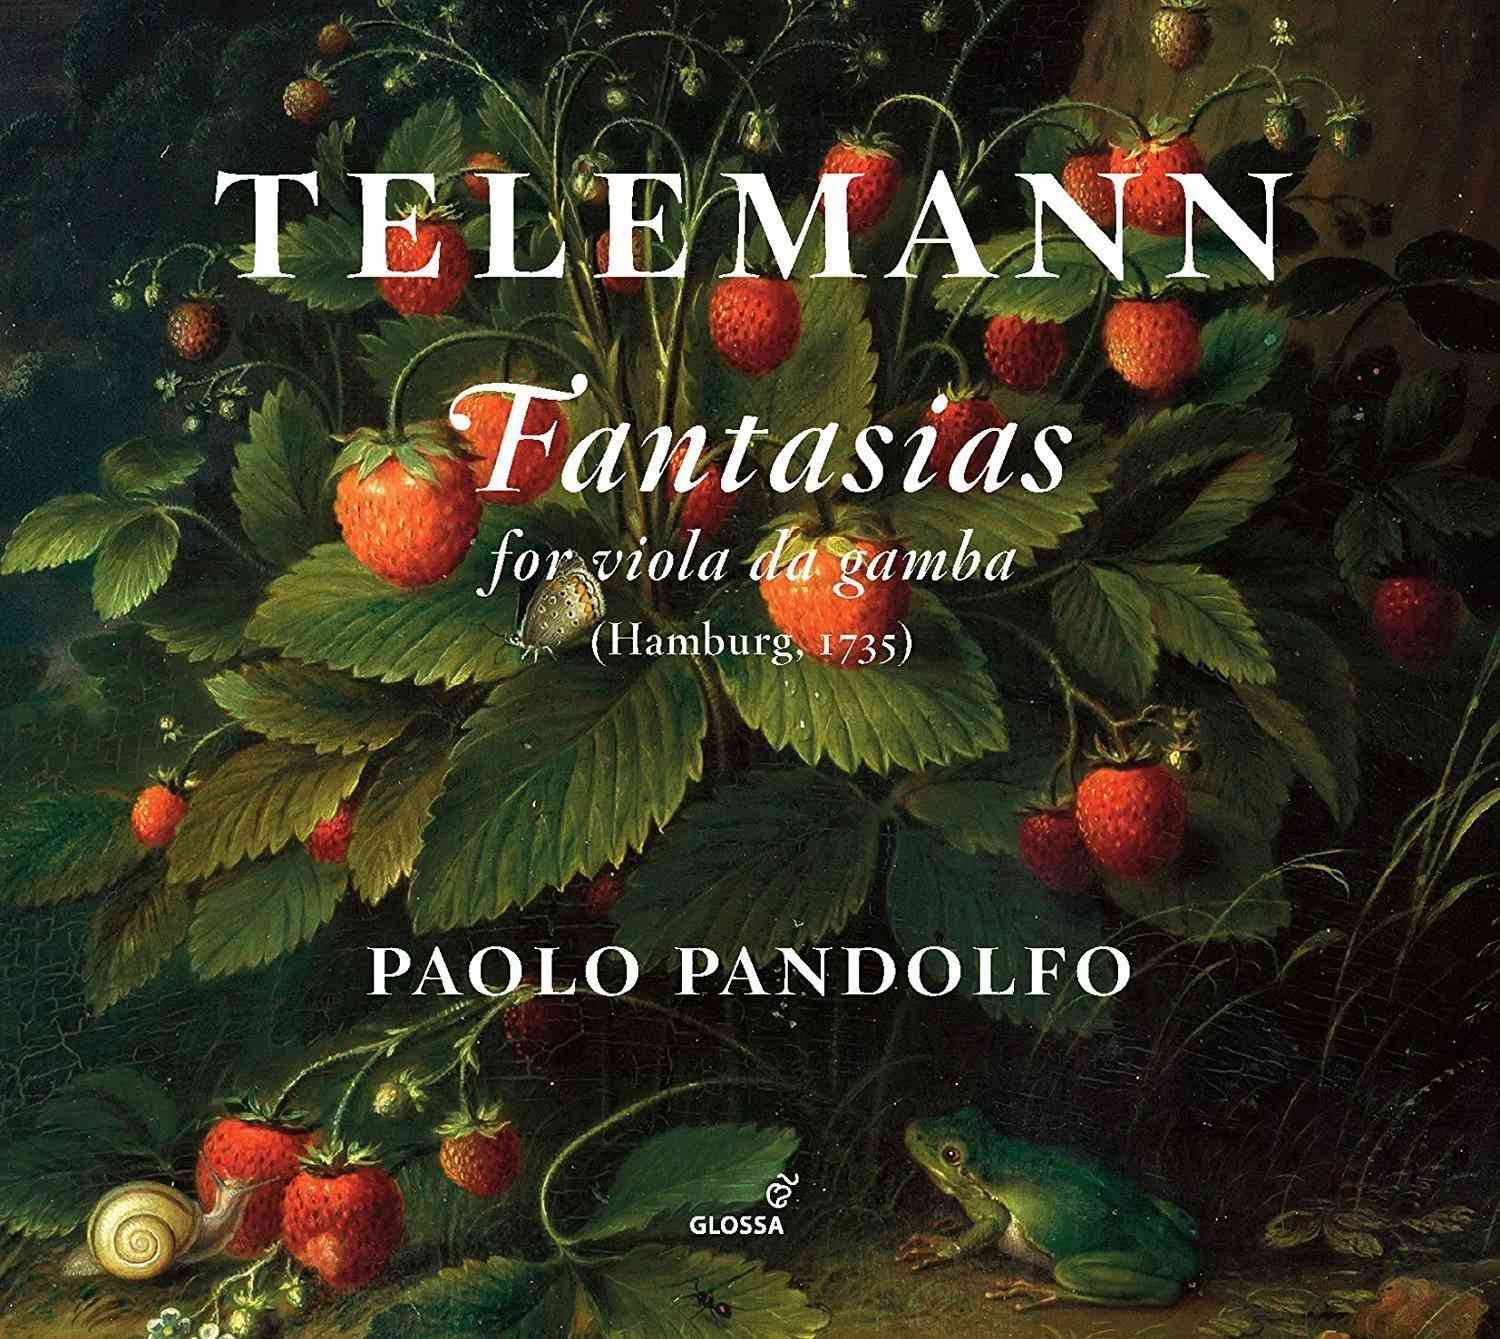 Telemann: disques indispensables - Page 3 81iofw11